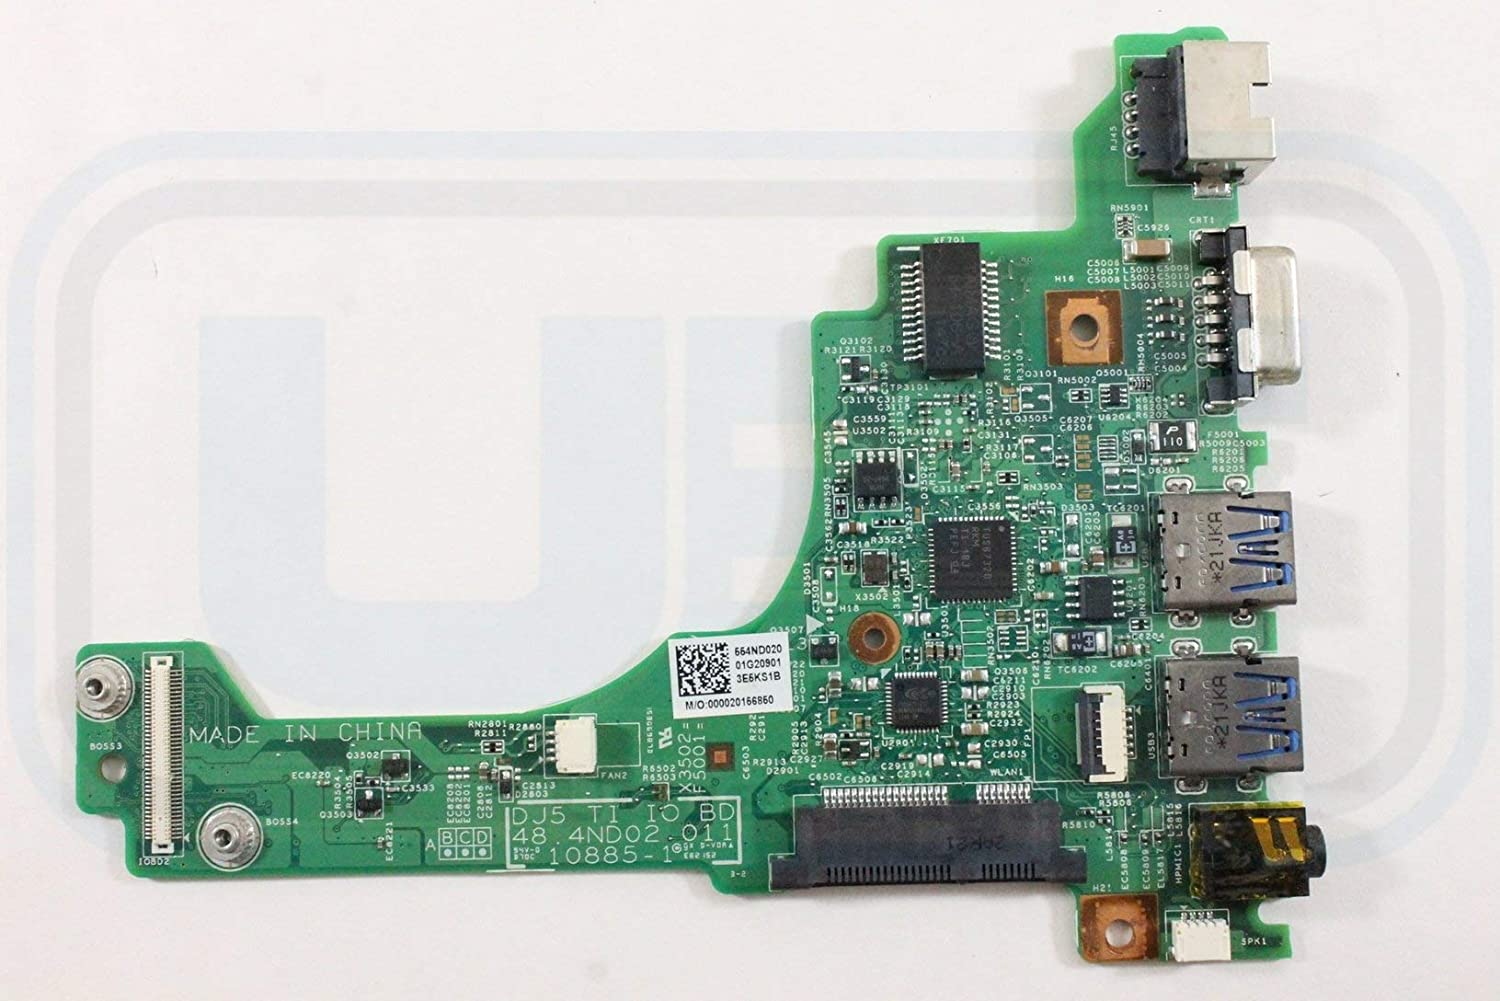 Dell Vostro V131 RX7N5 Audio Ethernet USB 3.0 VGA Board 48.4ND02.011